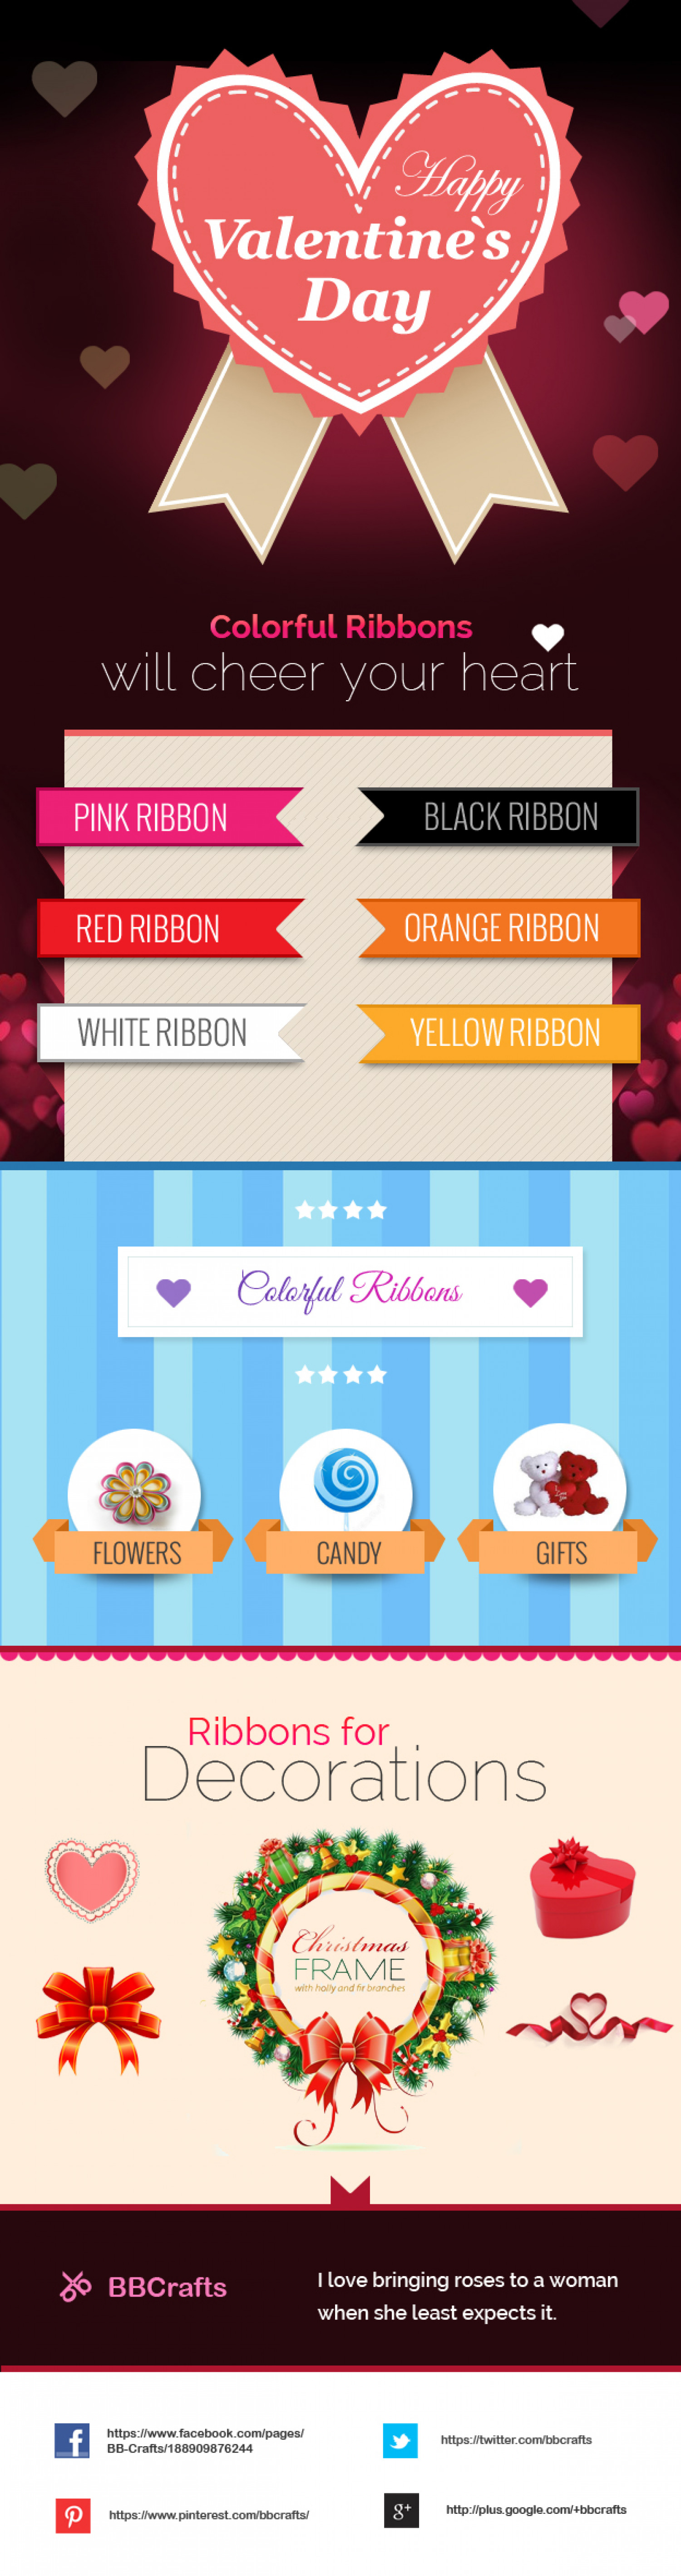 Valentine's Day with Colorful Ribbons | BBCrafts Infographic